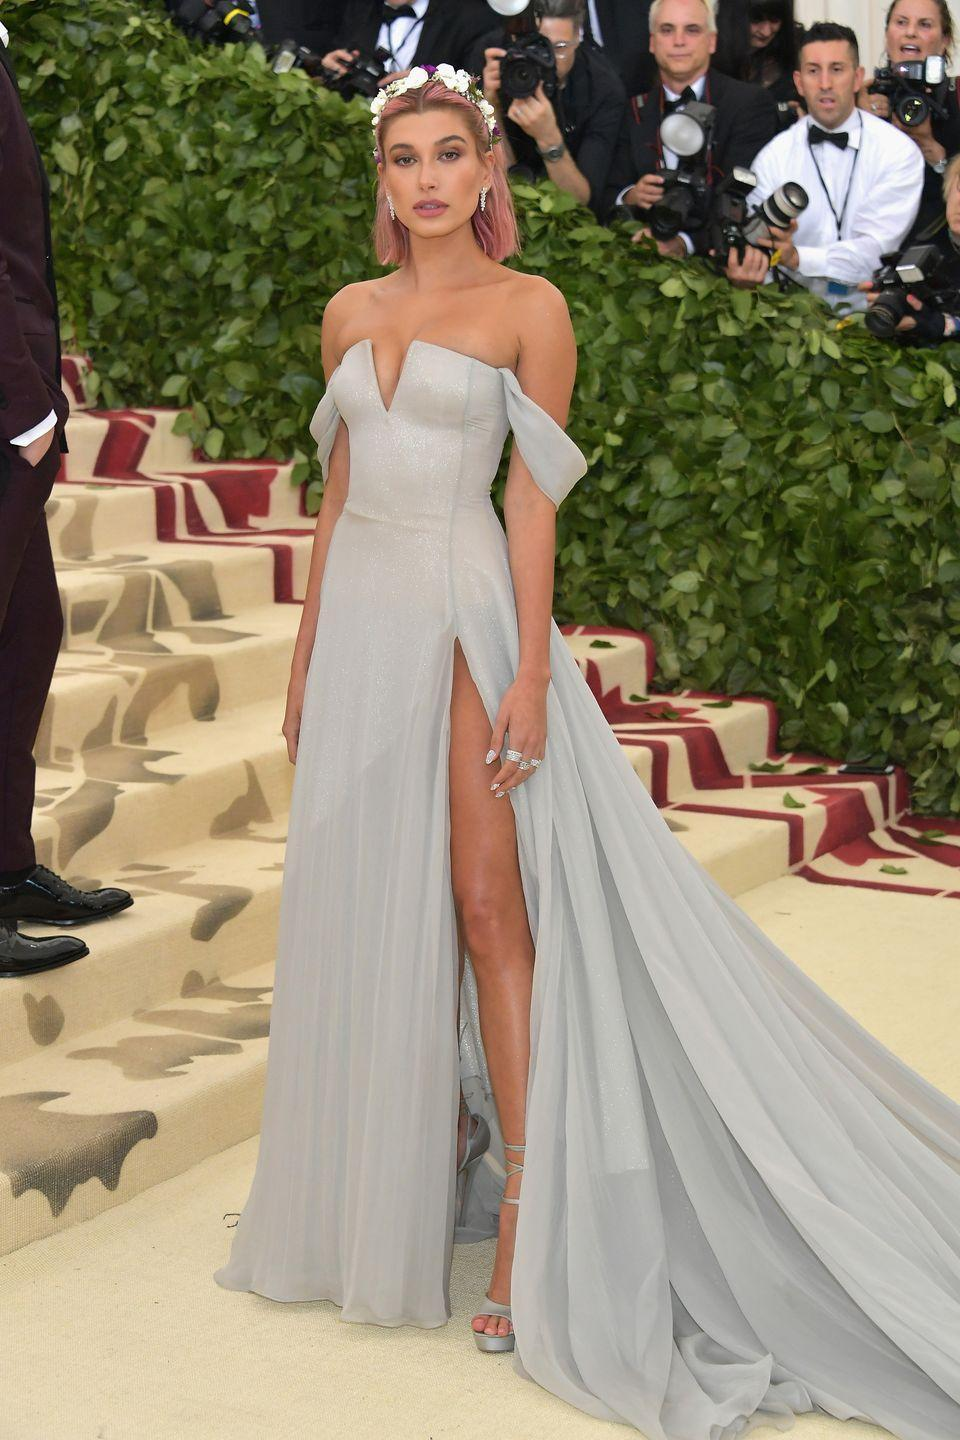 <p>American model Hailey Bieber channeled Princess Aurora in an icy-blue off-the-shoulder gown by Tommy Hilfiger at the 2018 Met Gala in New York.</p>